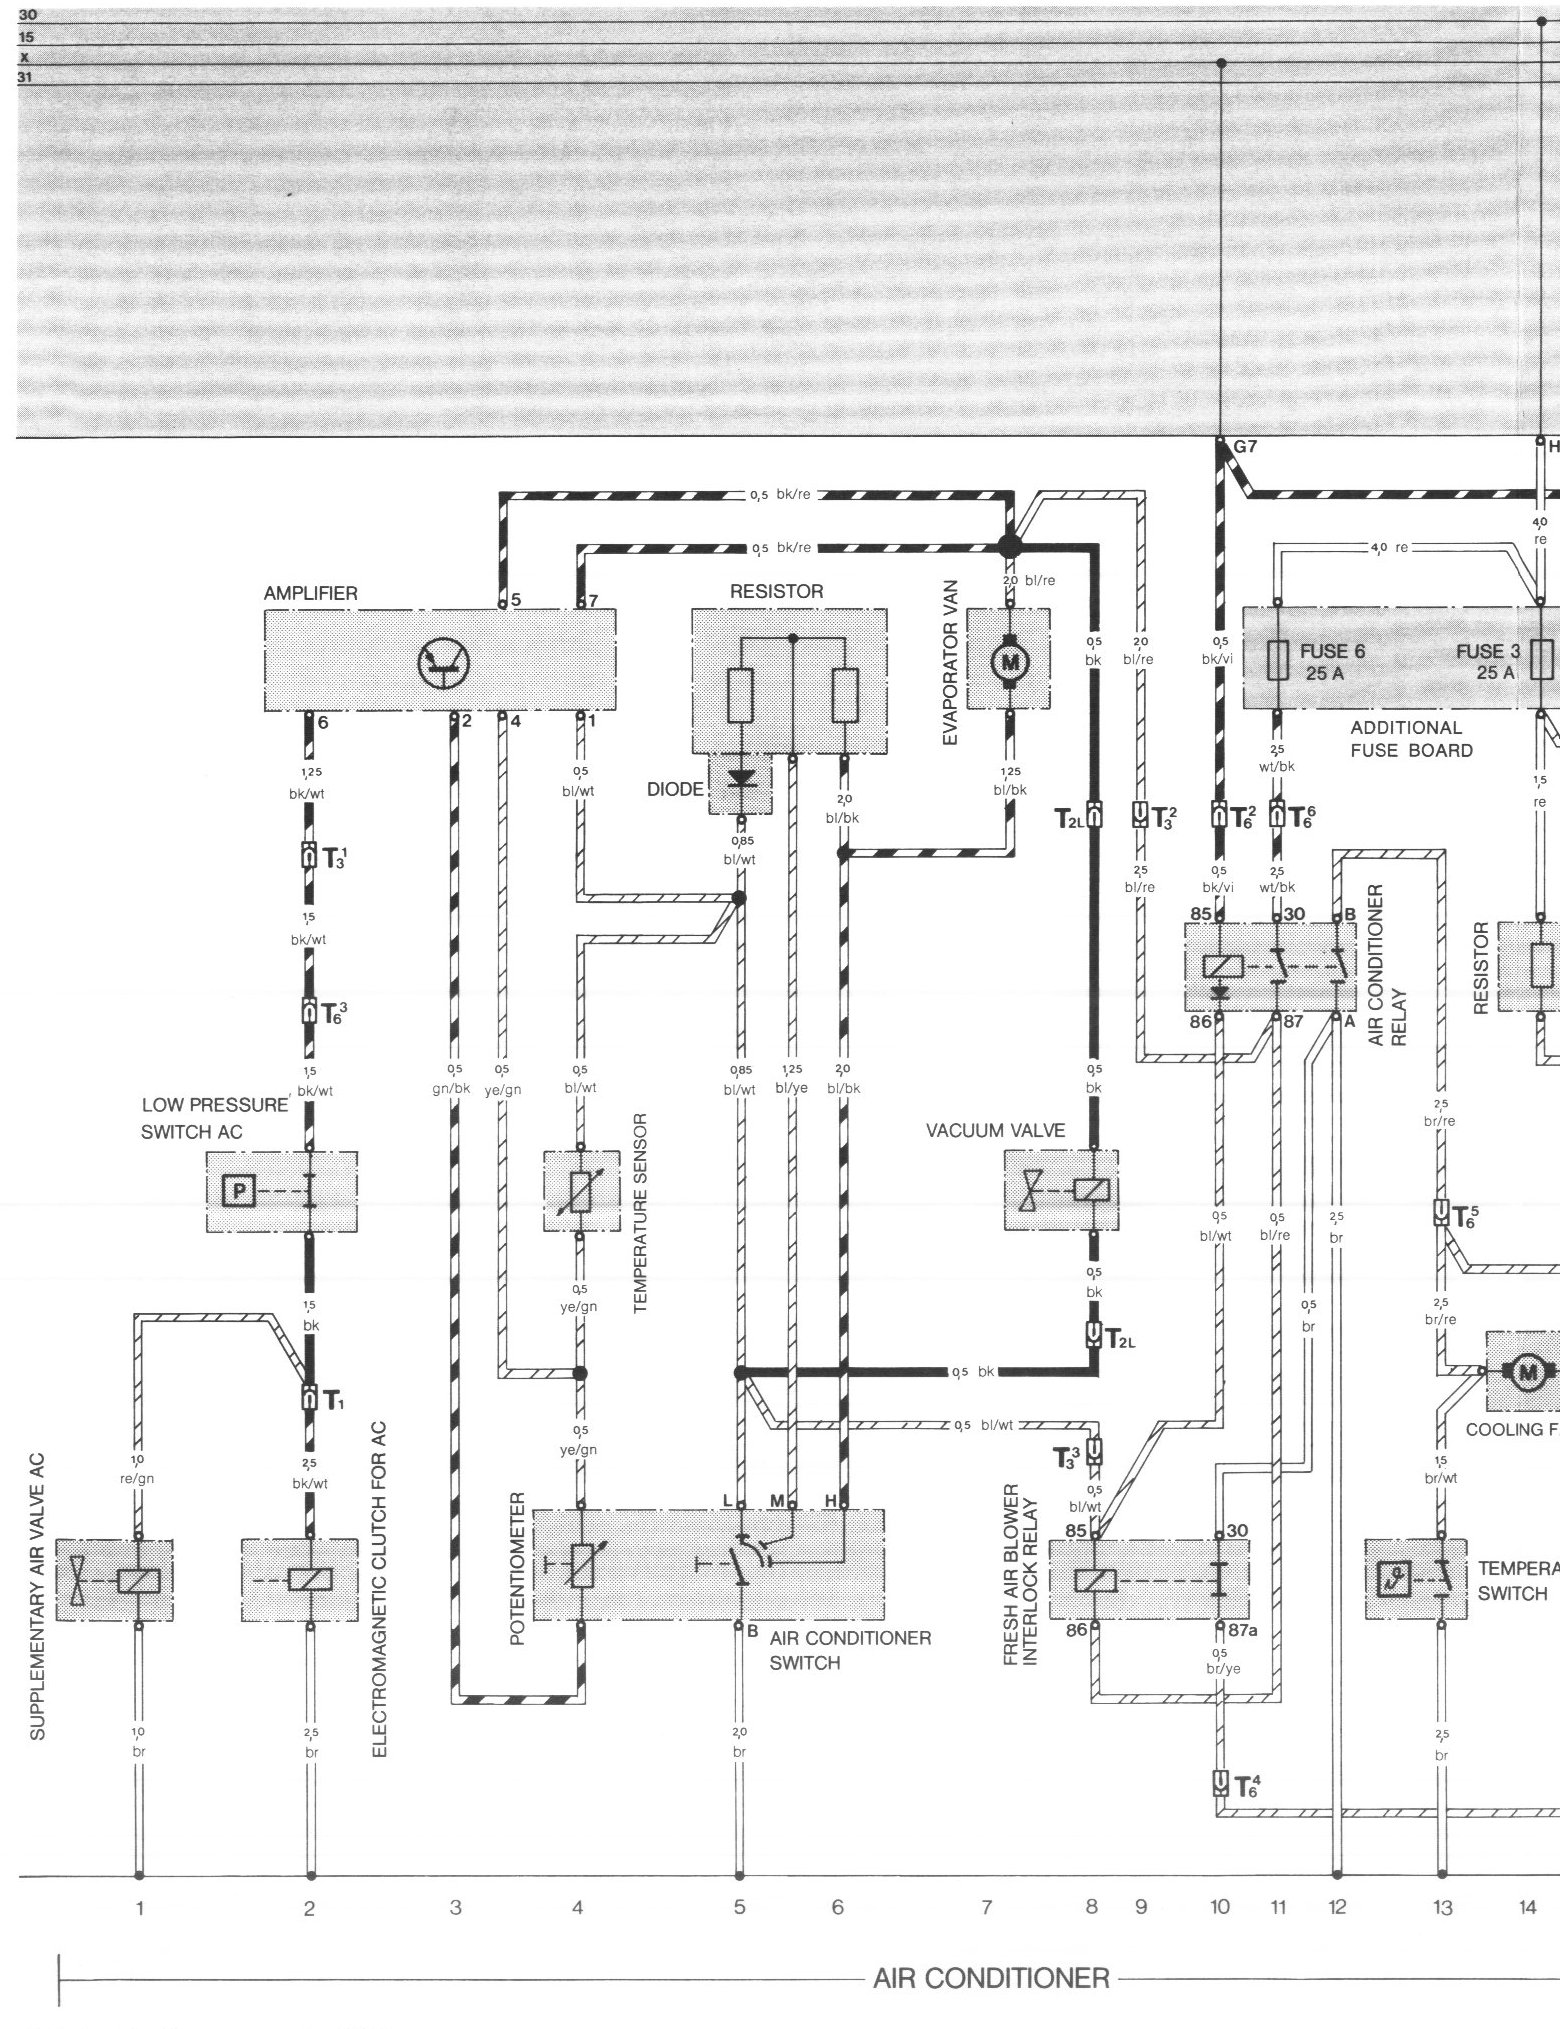 944_84_AC_1 pelican parts porsche 924 944 electrical diagrams porsche 944 wiring diagram pdf at aneh.co